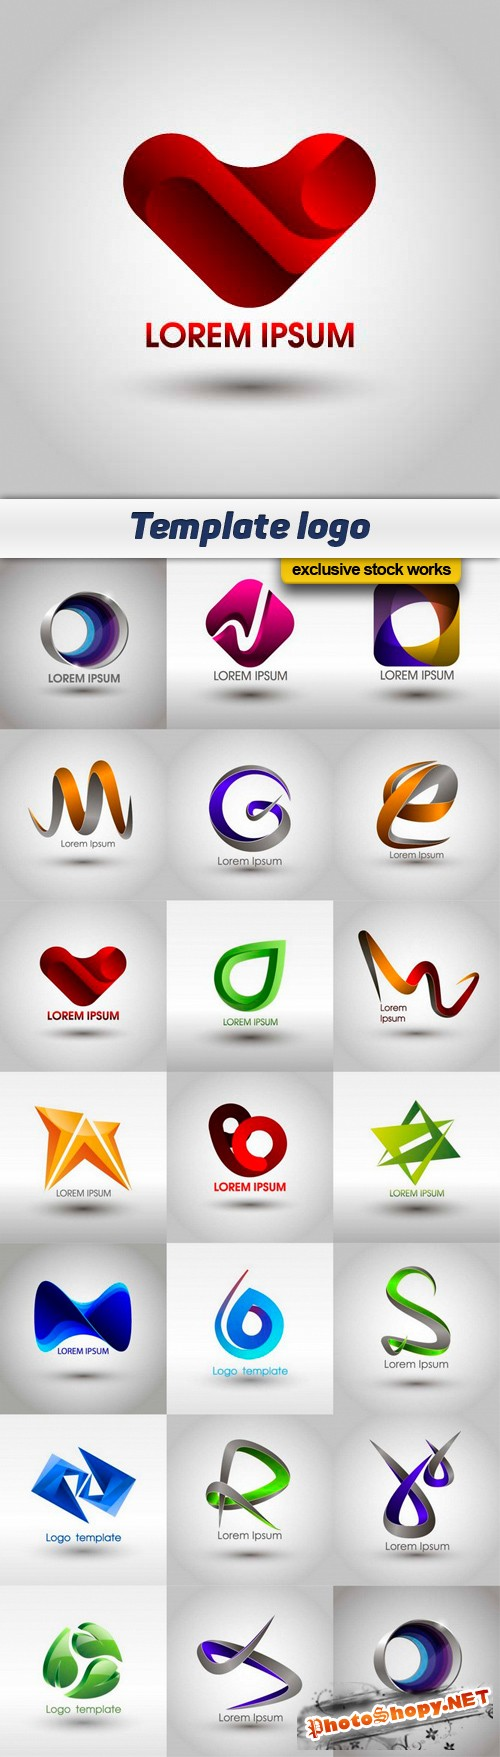 Template logo - 20 EPS